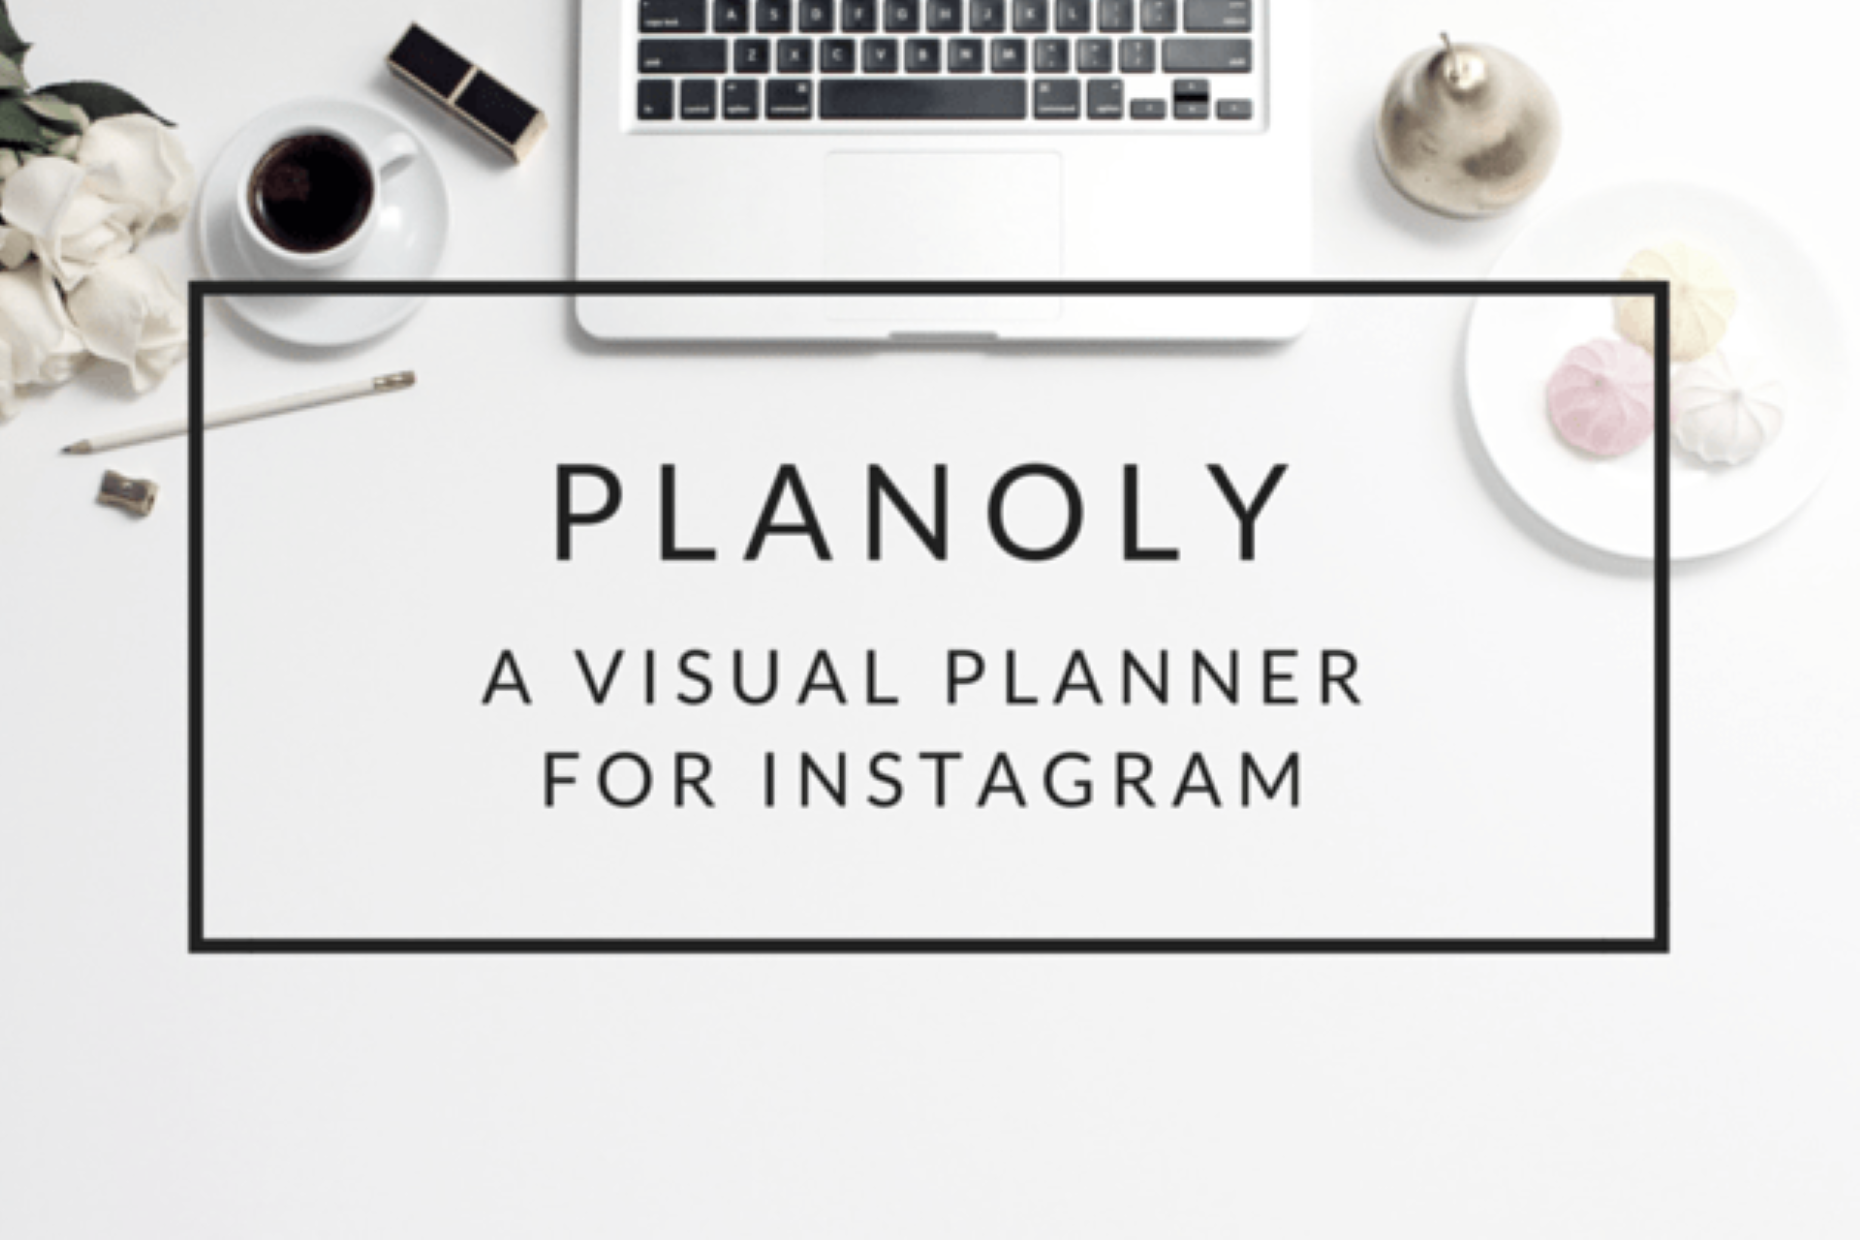 Planoly a visual planner for instagram